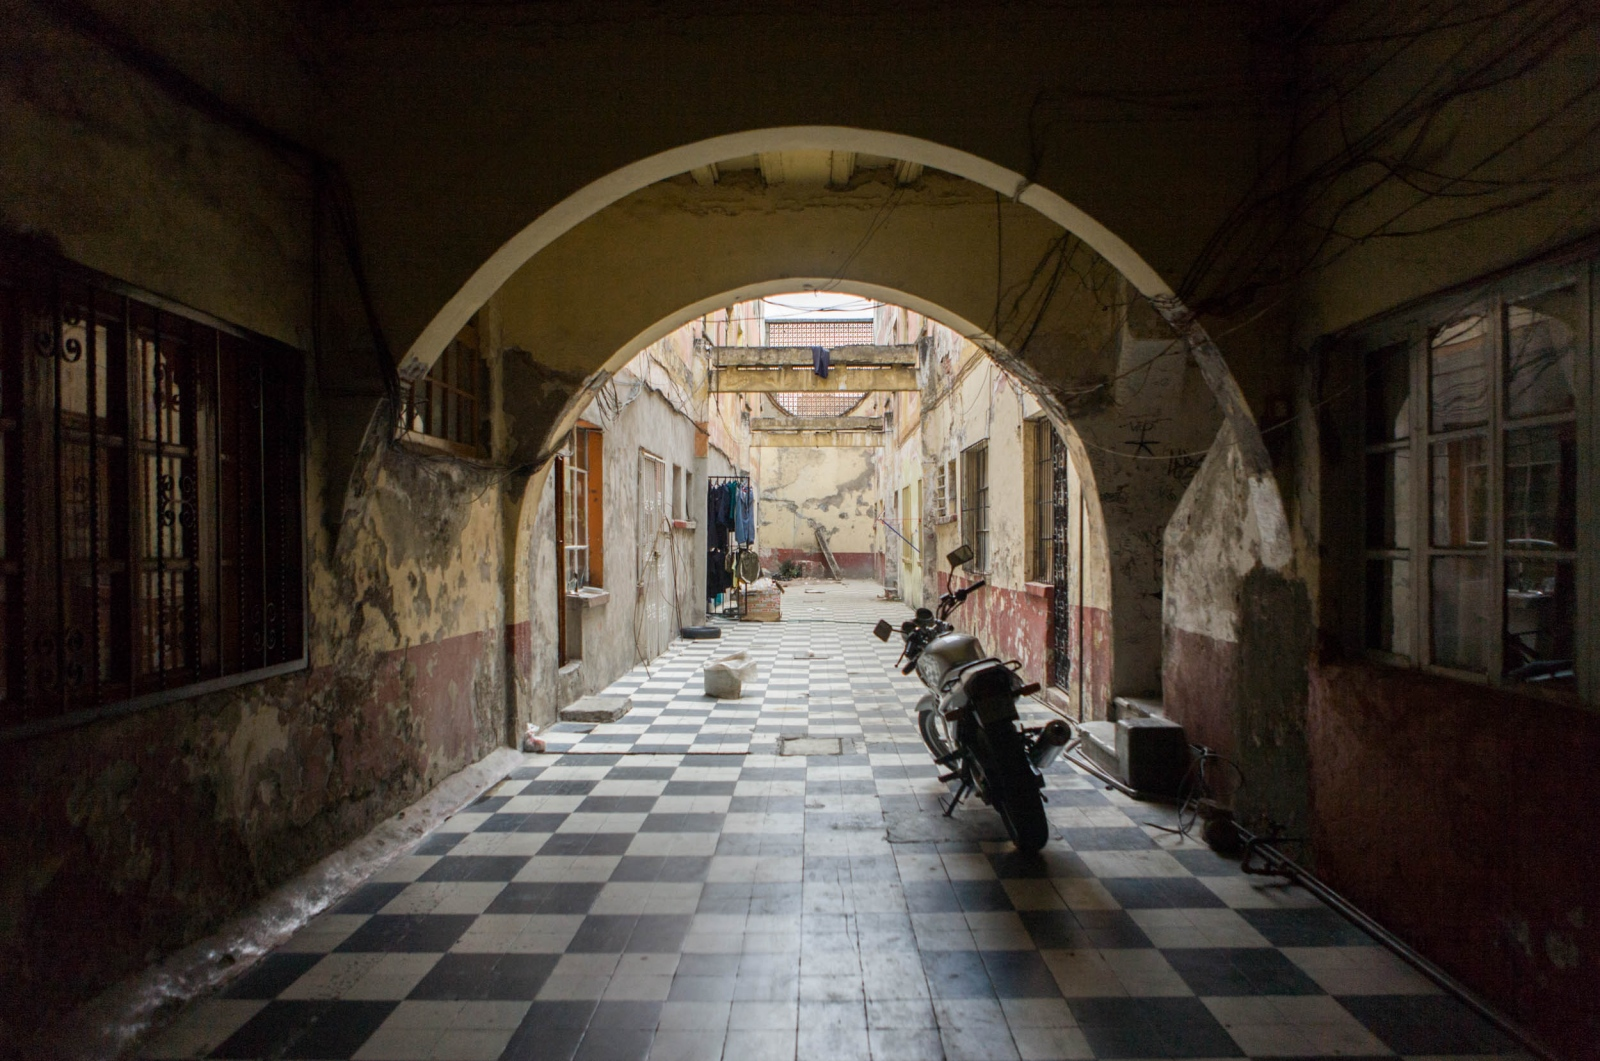 · Patio and entrance to the building, where many festivities have been celebrated and the place where the teenagers usually hang-out. Due to severe innundations caused during the raining season, the building has sunk with time. The back section of the building, after the arches will be demolished to give place to two fou-story buildings and the the frontal region will be renovated. April 7th, 2010 // ·  Patio y entrada a la vecindad, lugar de innumerables celebraciones familiares. A causa de las severas inundaciones durante la época de lluvias, el suelo se ha hundido con el tiempo. La parte frontal se restaurará y las viviendas traseras serán demolidas para dar sitio a nuevas estructuras. 10 de abril de 2010.